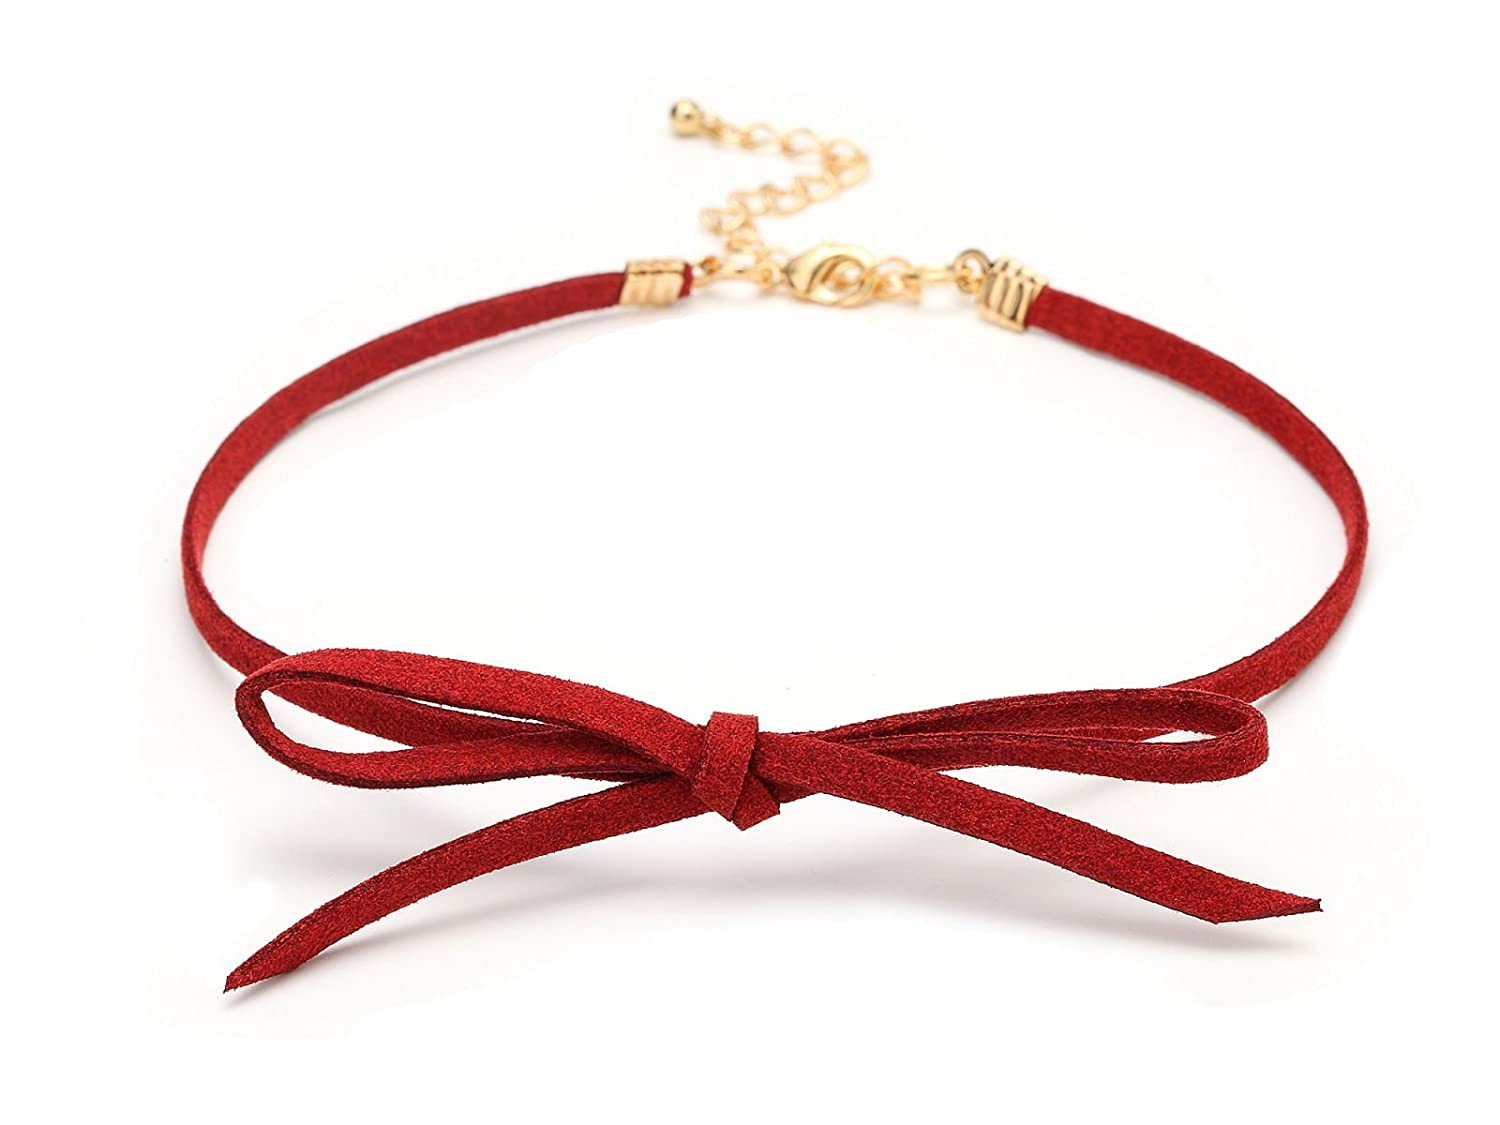 Suede Red Bow Velvet Choker Necklace Punk Gothic Retro Chain CK6 ca-ck-bow-red034